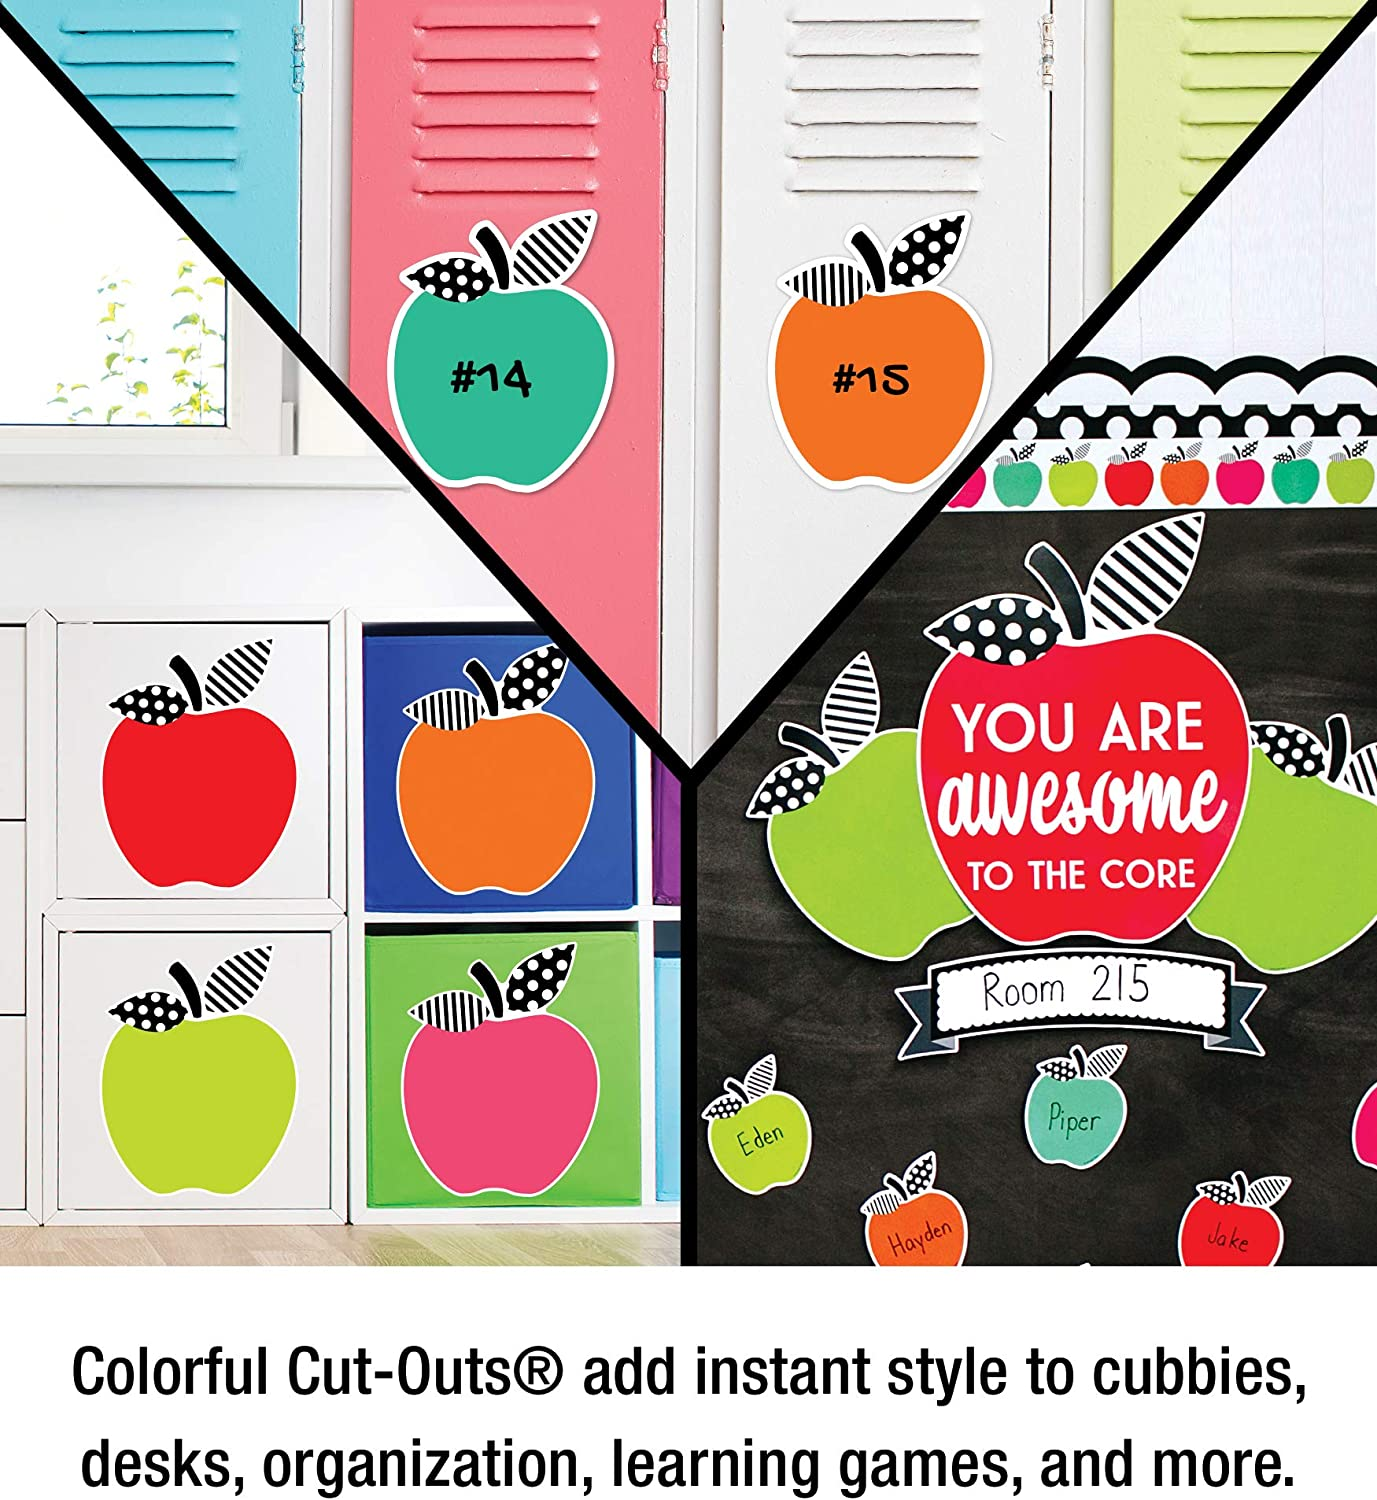 alpha-grp.co.jp Office Products Office Supplies Apple Cutouts 18 ...